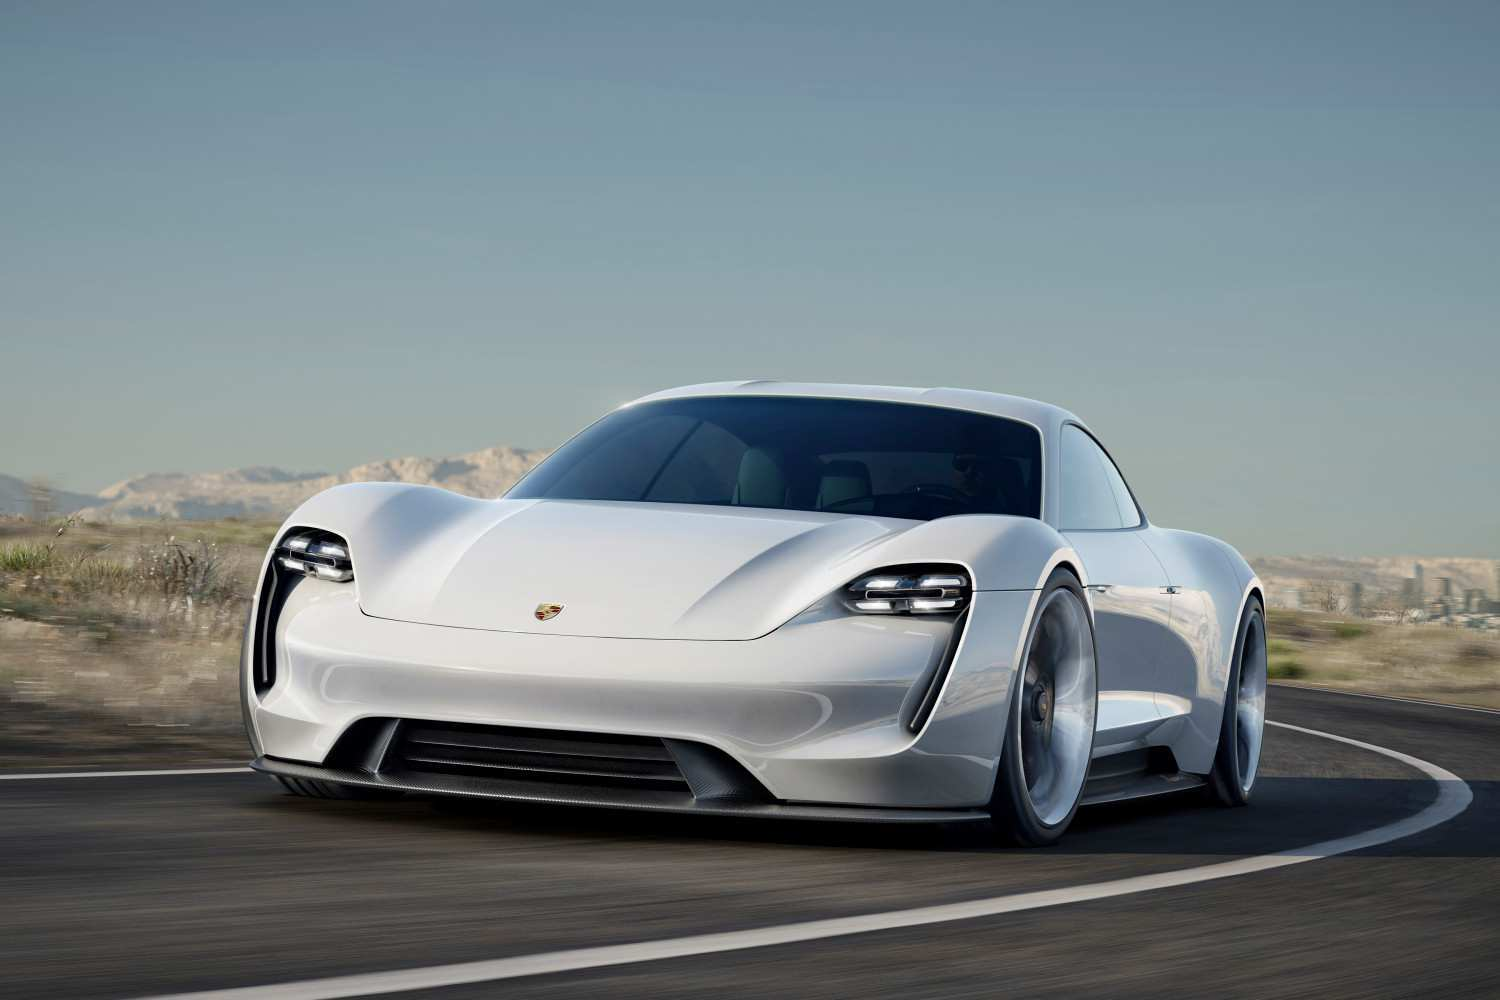 87 Best Review 2019 Porsche Electric Car New Review by 2019 Porsche Electric Car